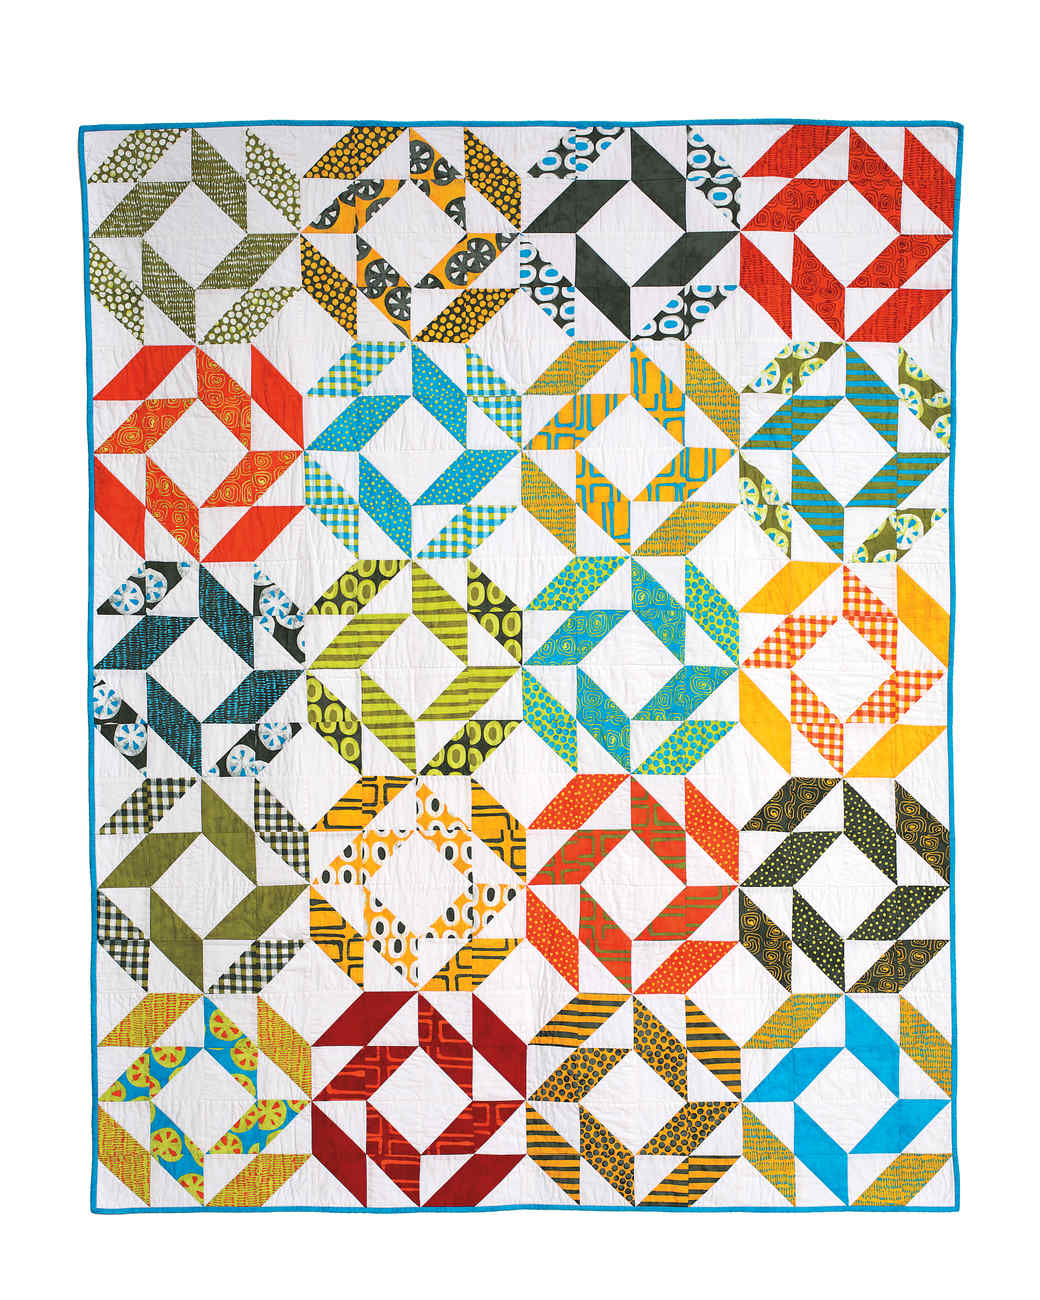 quilting-modern-spin-cycle-courtesy-john-polack-314.jpg